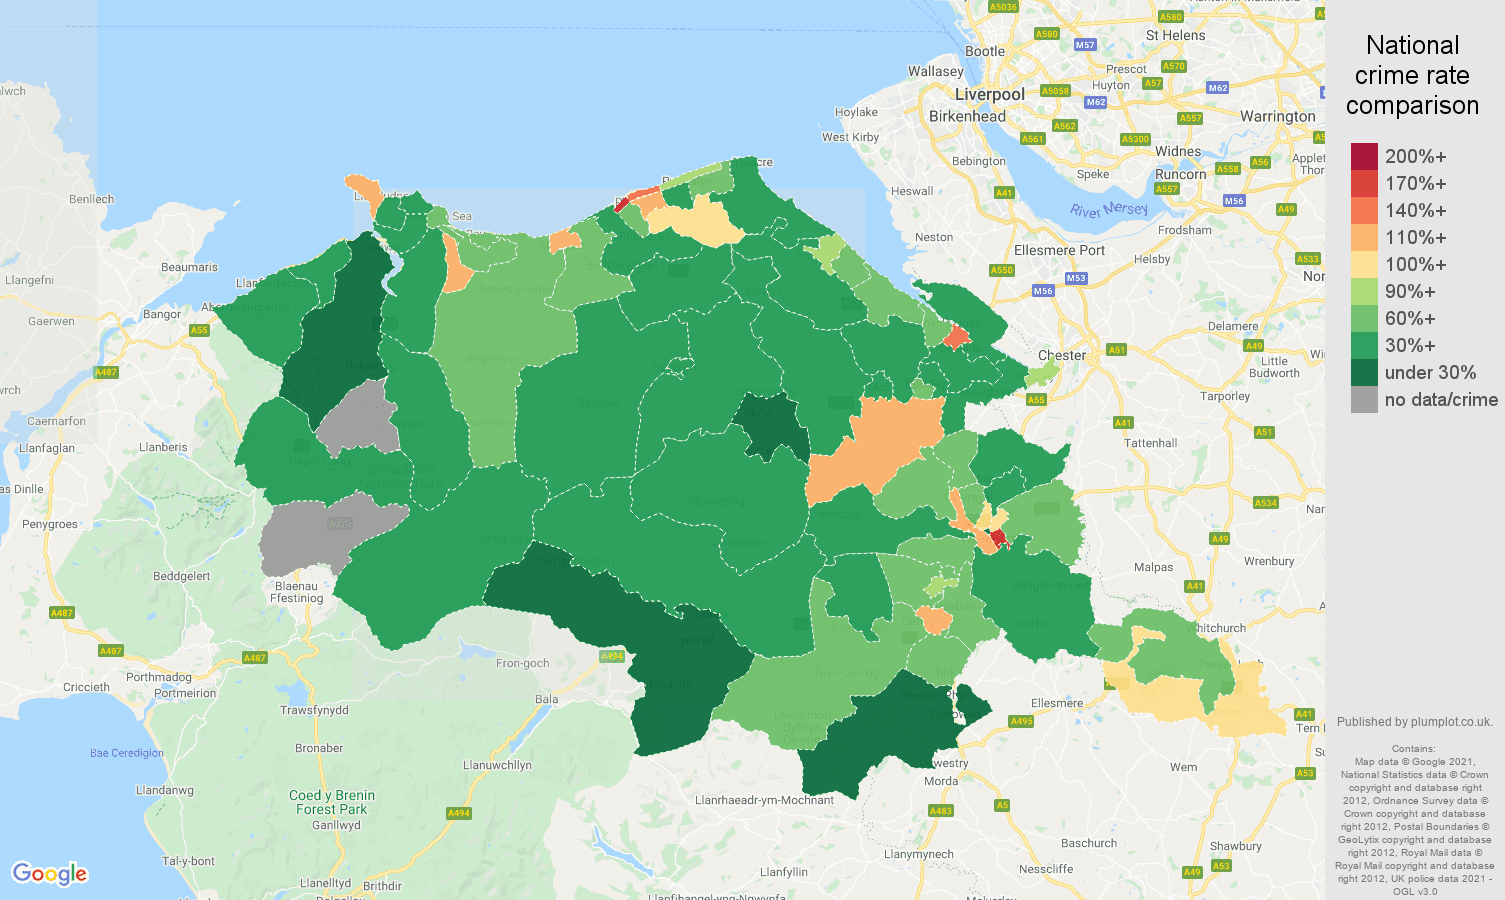 Clwyd burglary crime rate comparison map